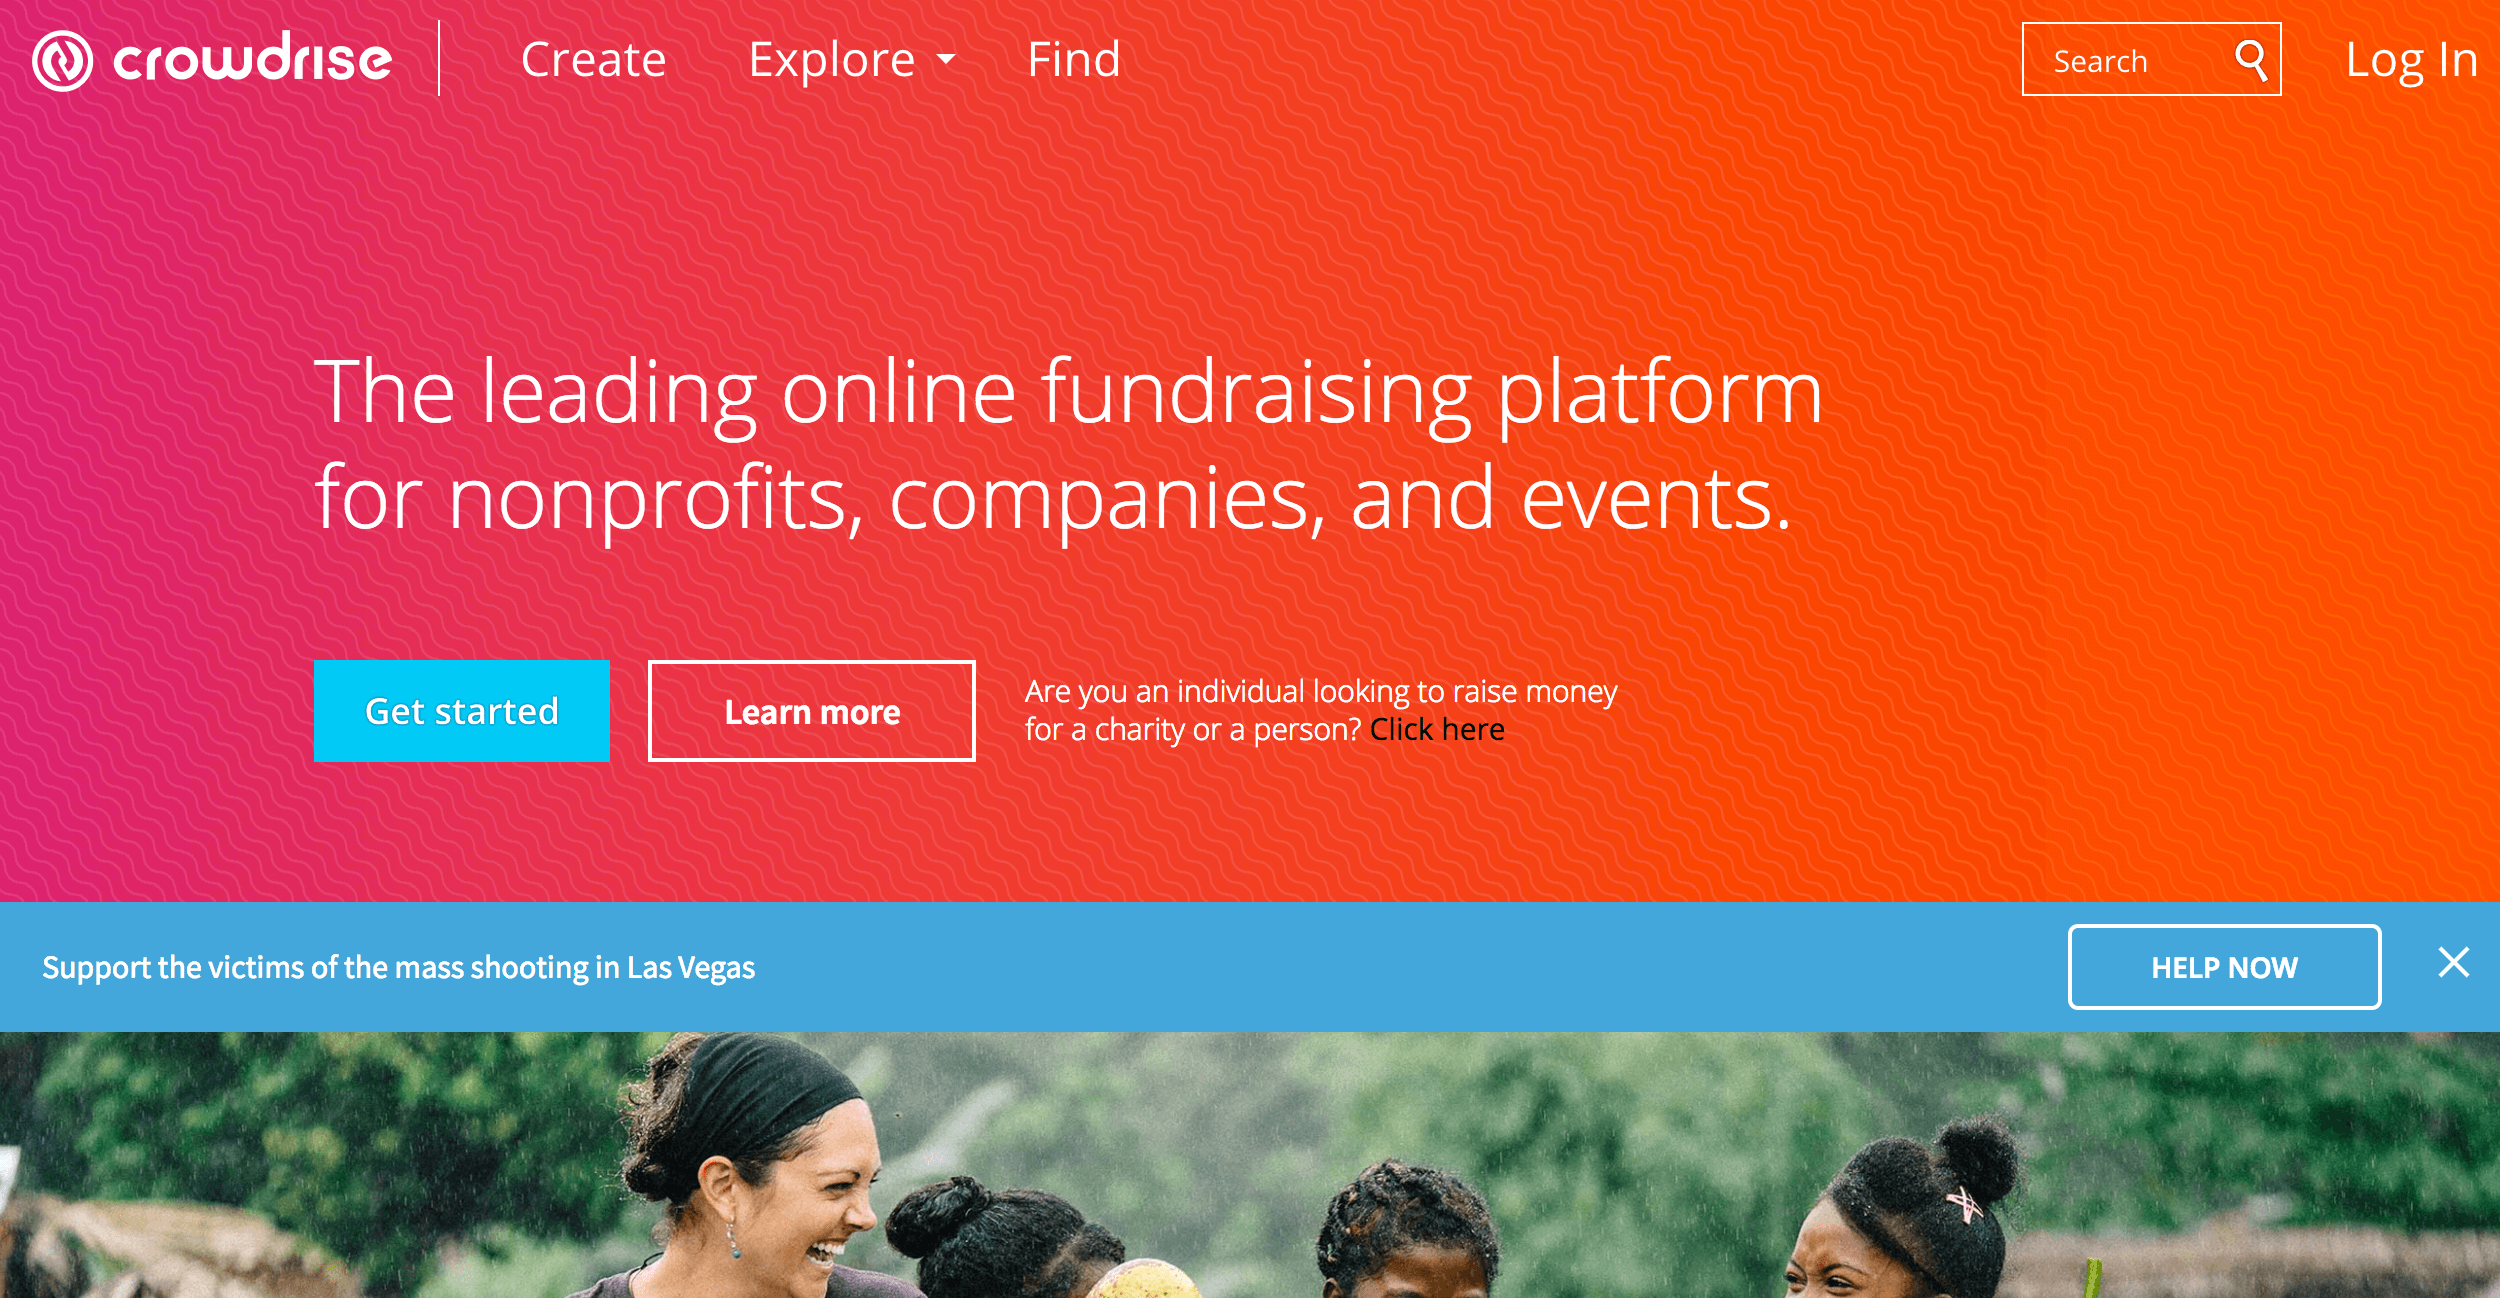 Crowdrise social fundraising for nonprofits, companies, and events